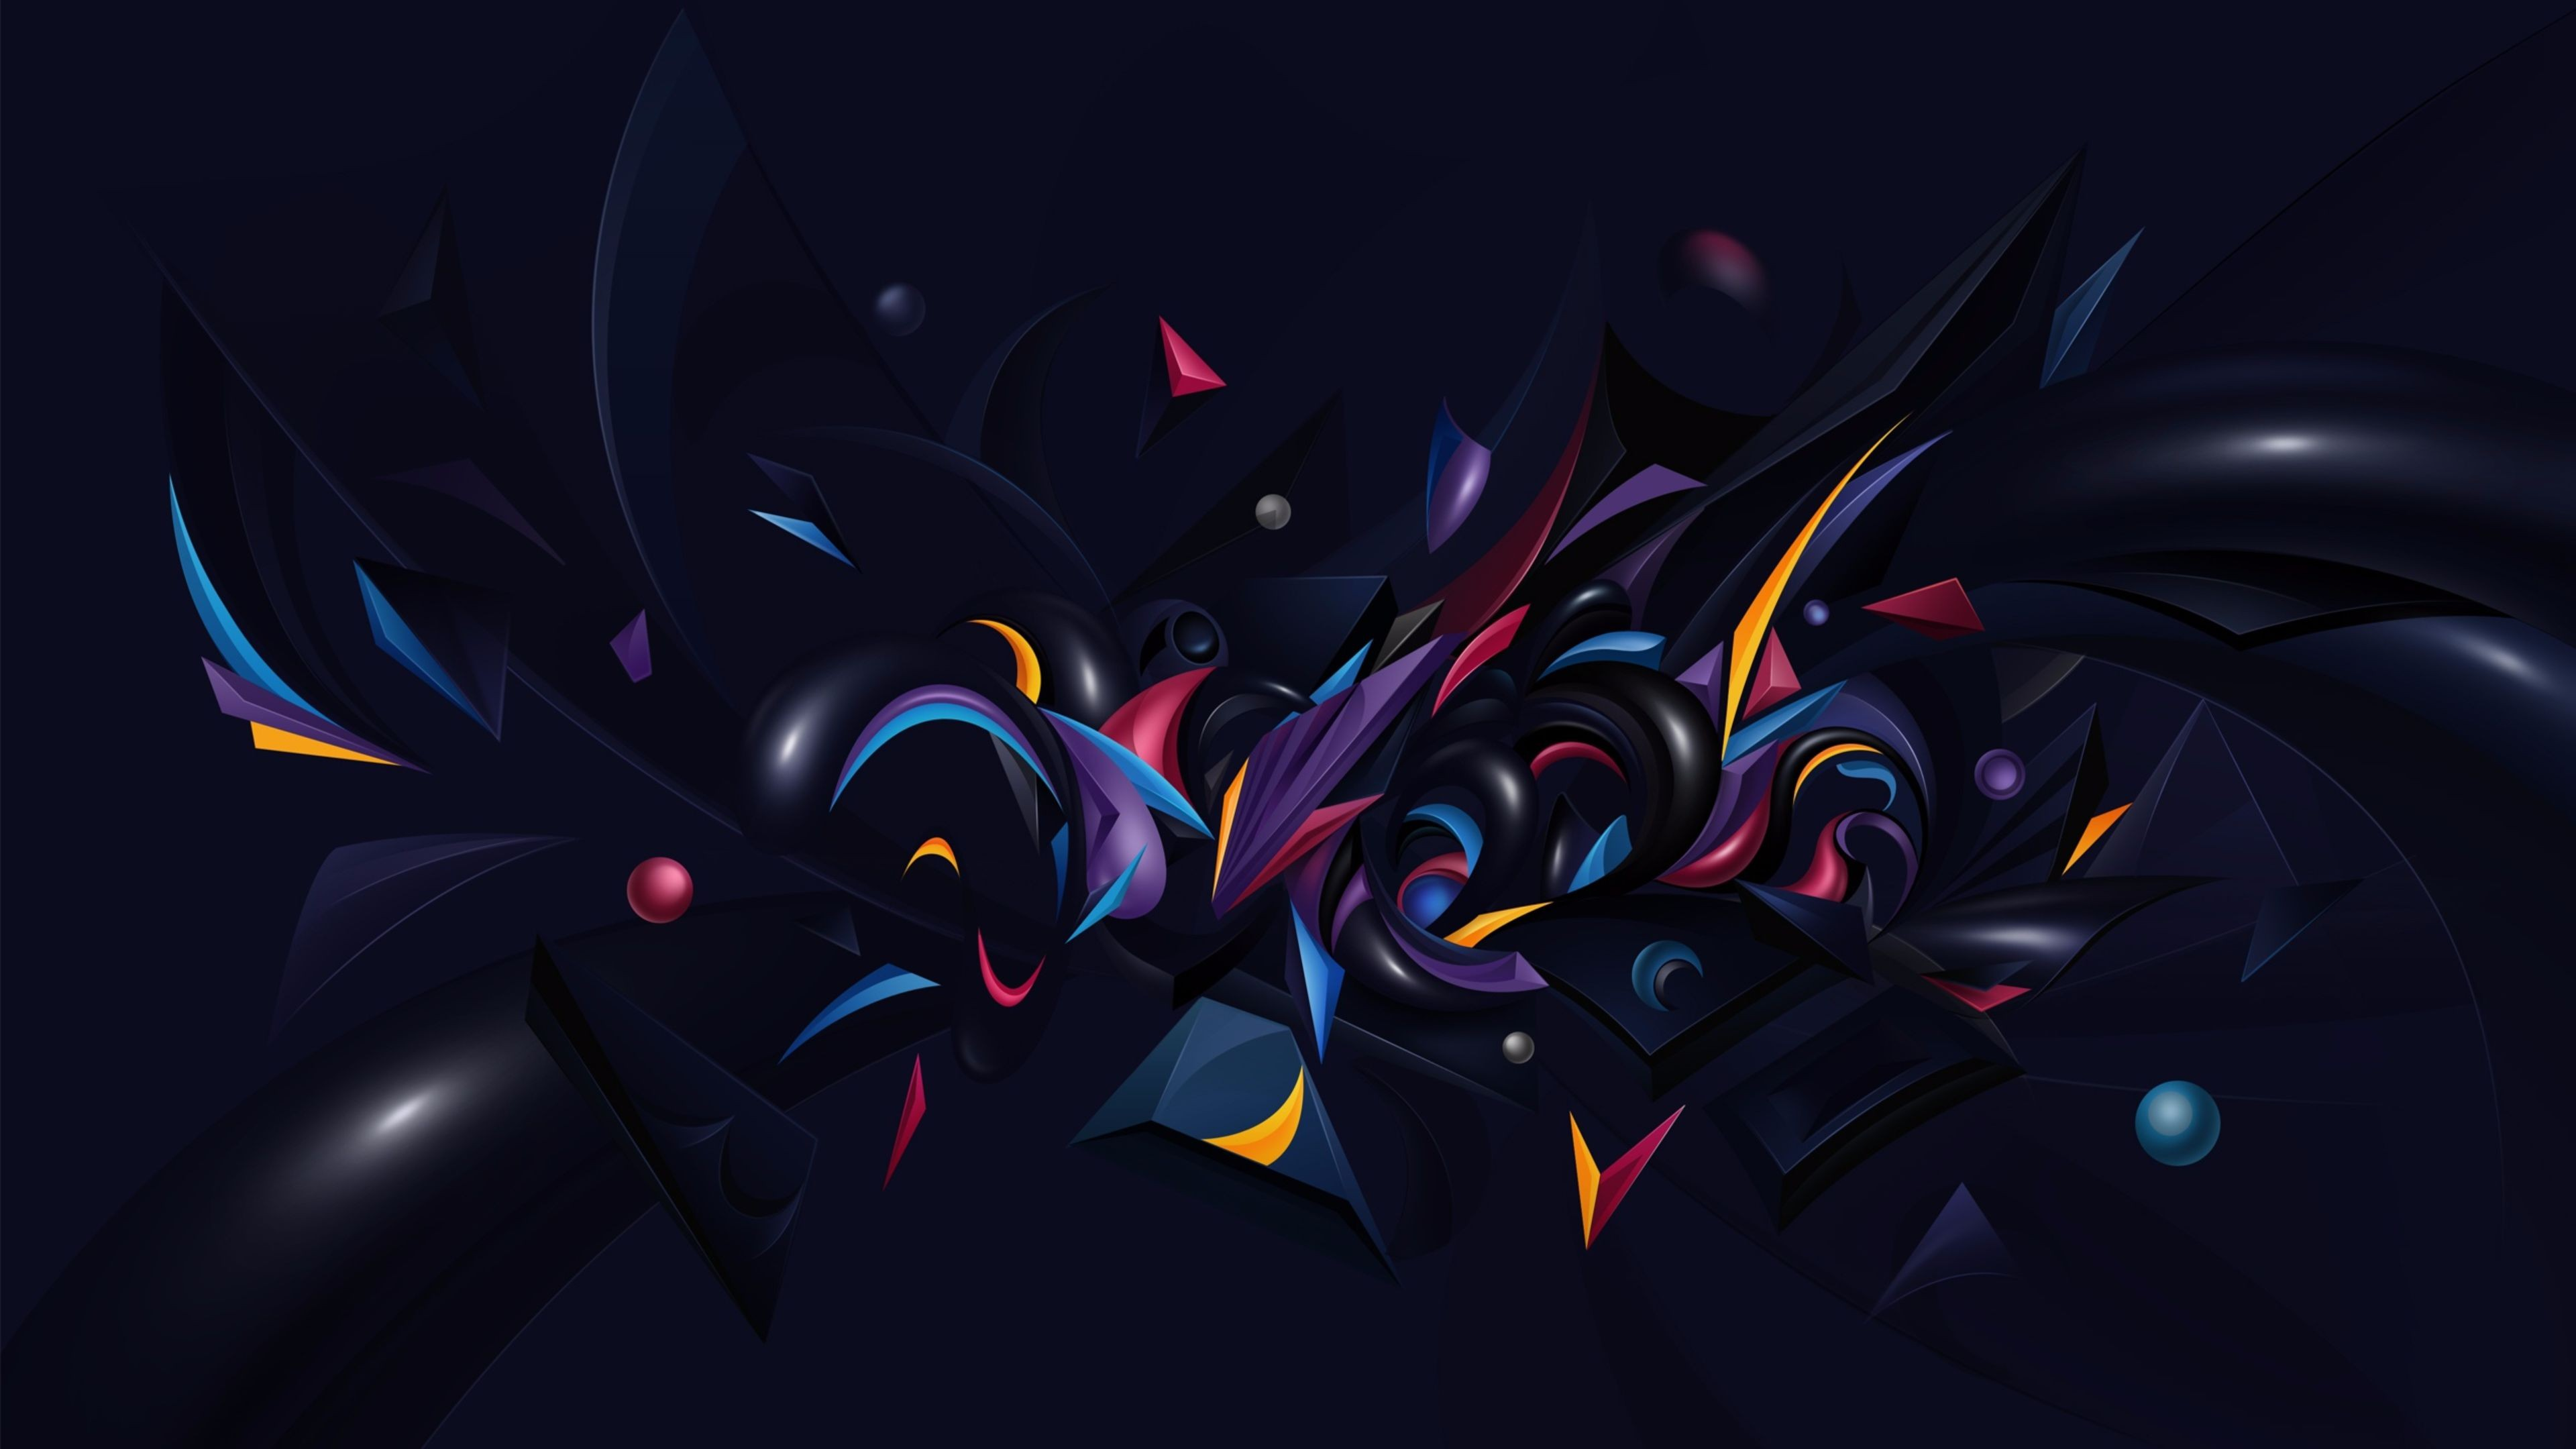 4k Resolution Abstract Art Wallpaper 4k